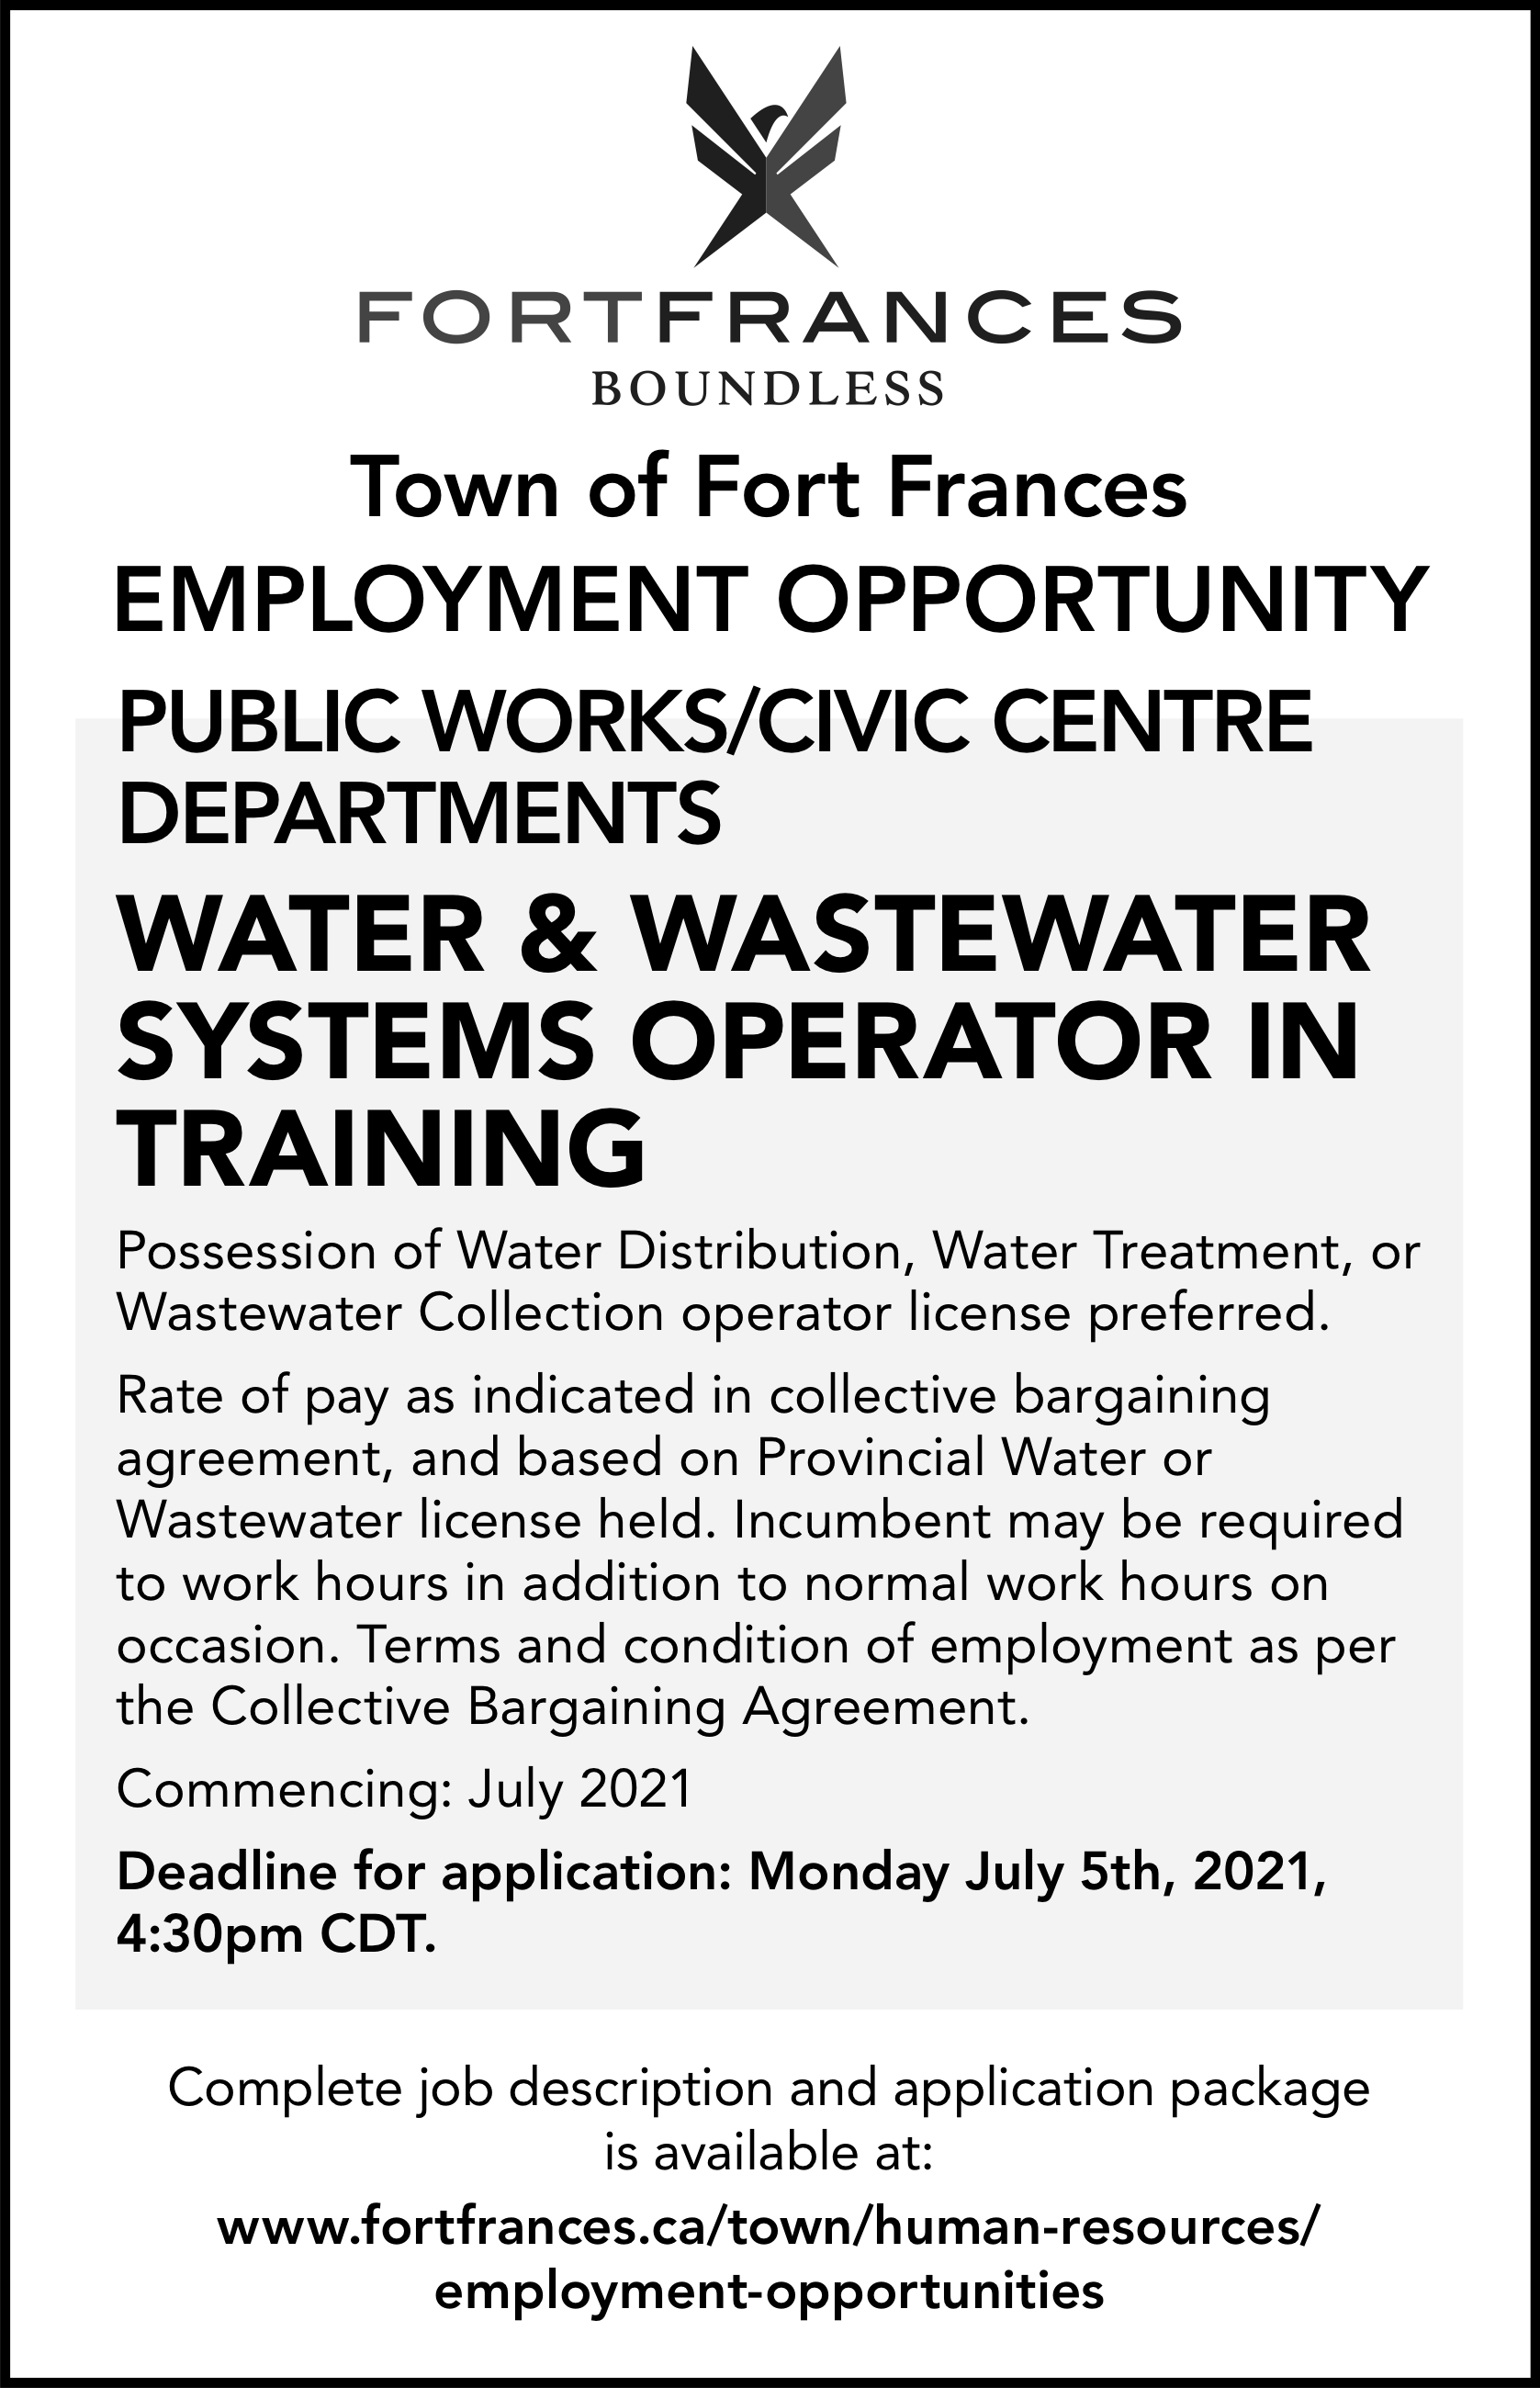 Water & Wastewater systems Operator in Training